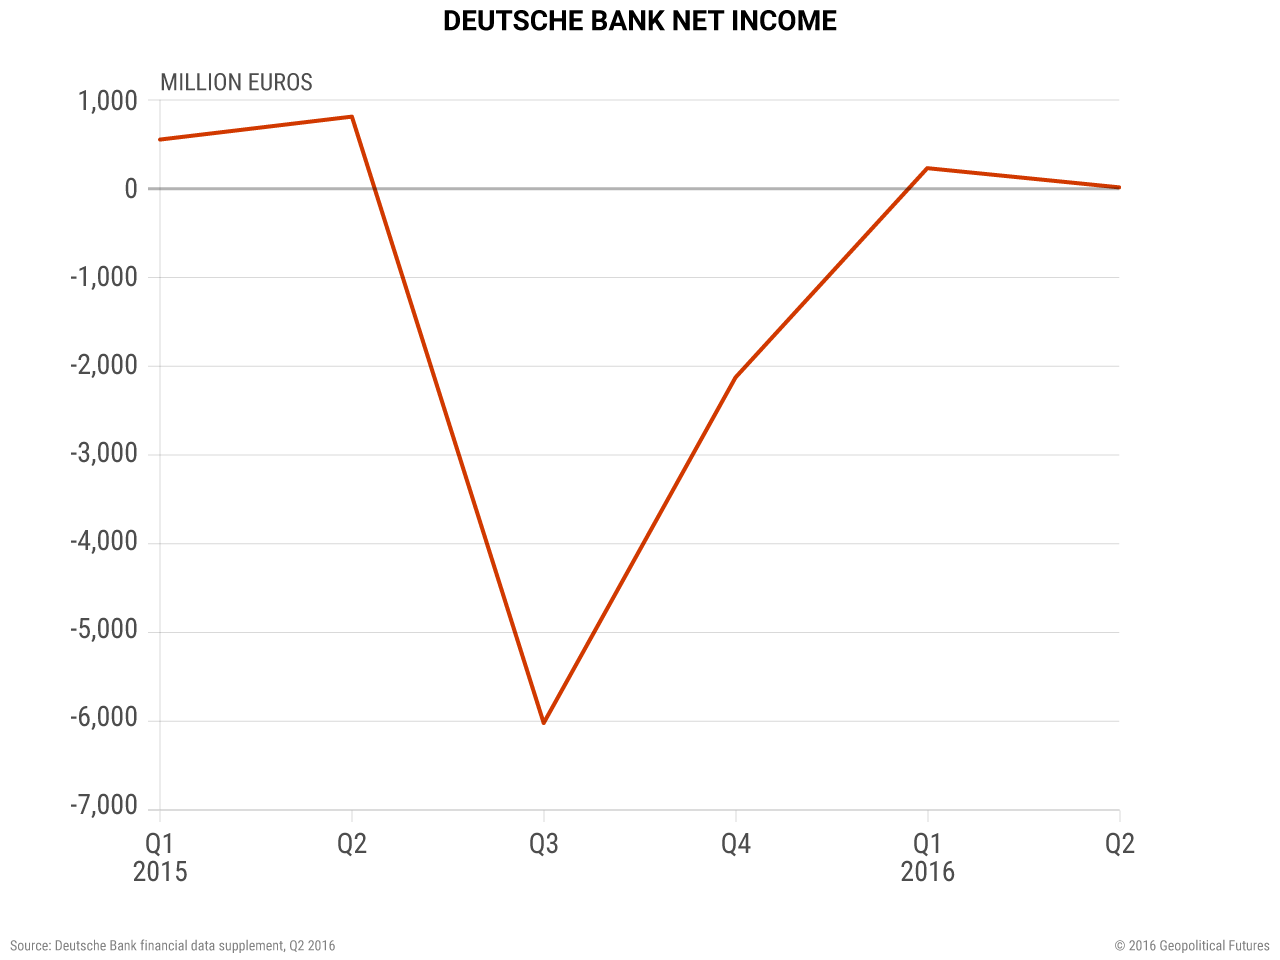 Deutsche Bank Net Income